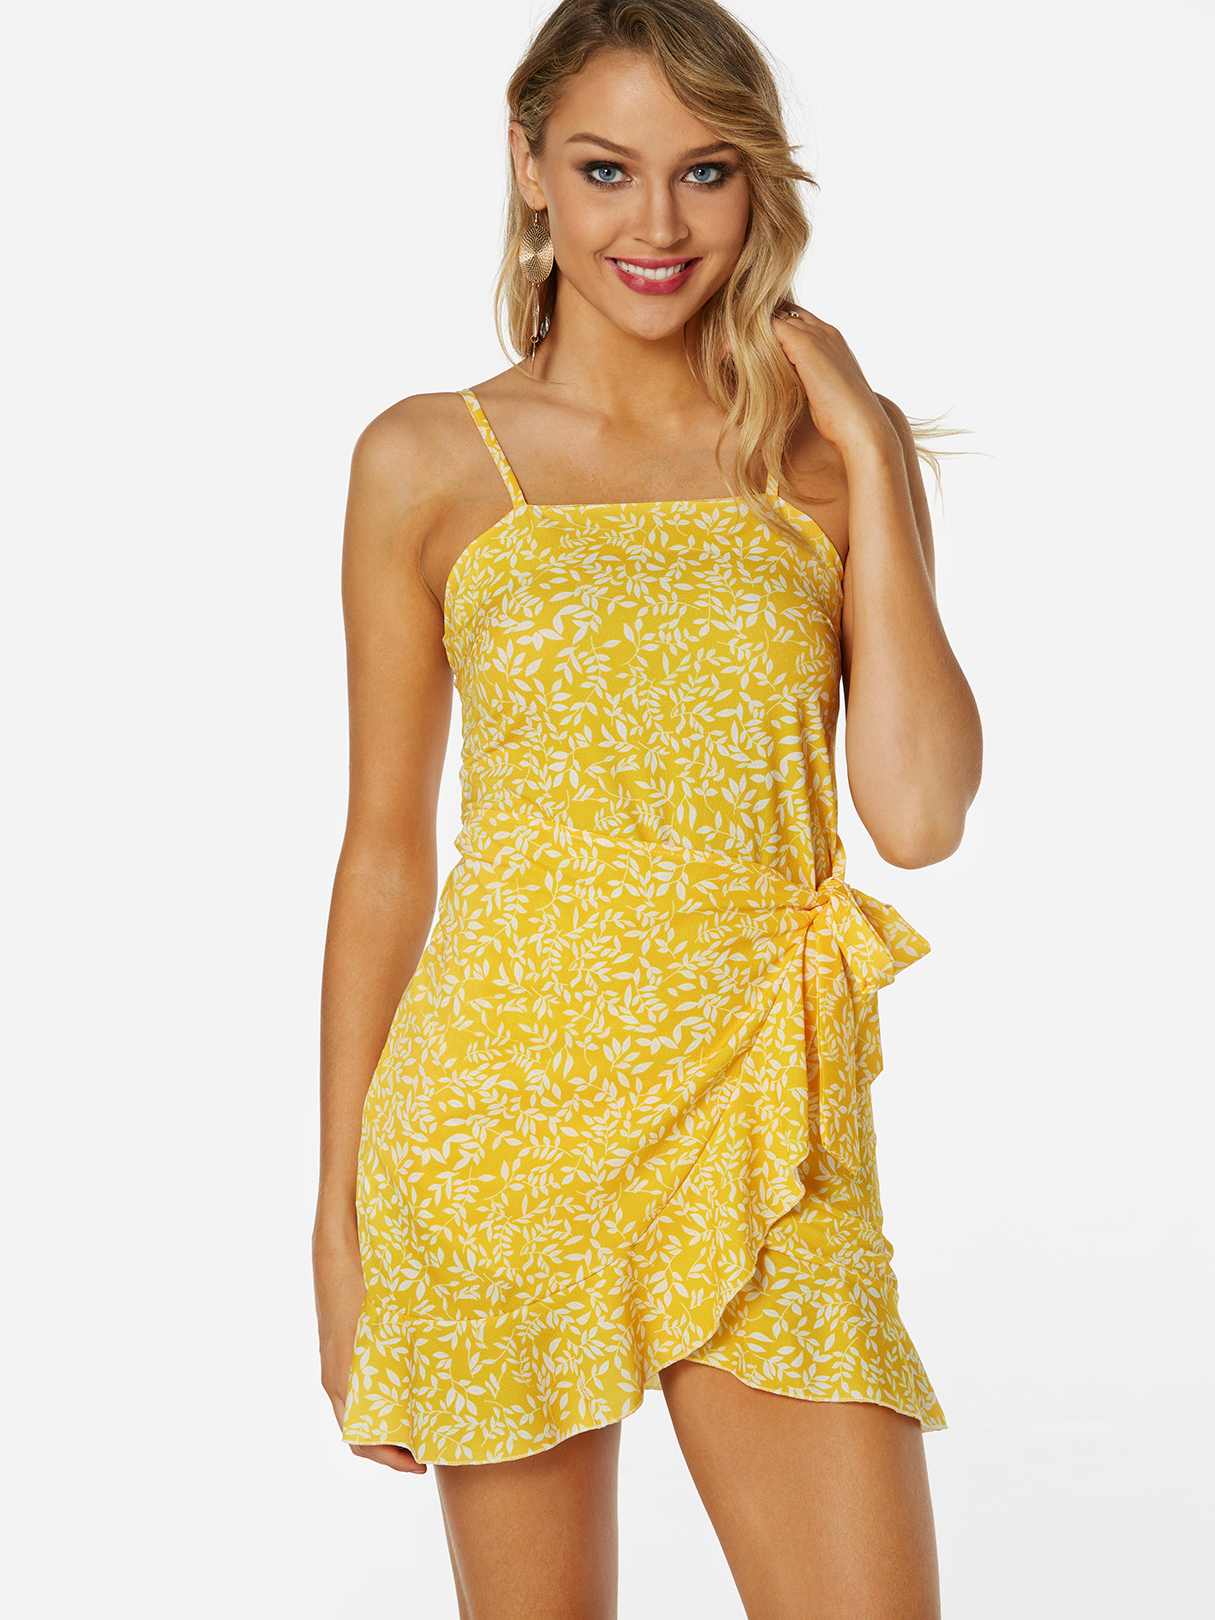 Yellow Random Floral Print Self-tie Design Backless Sleeveless Spaghetti Strap Dress